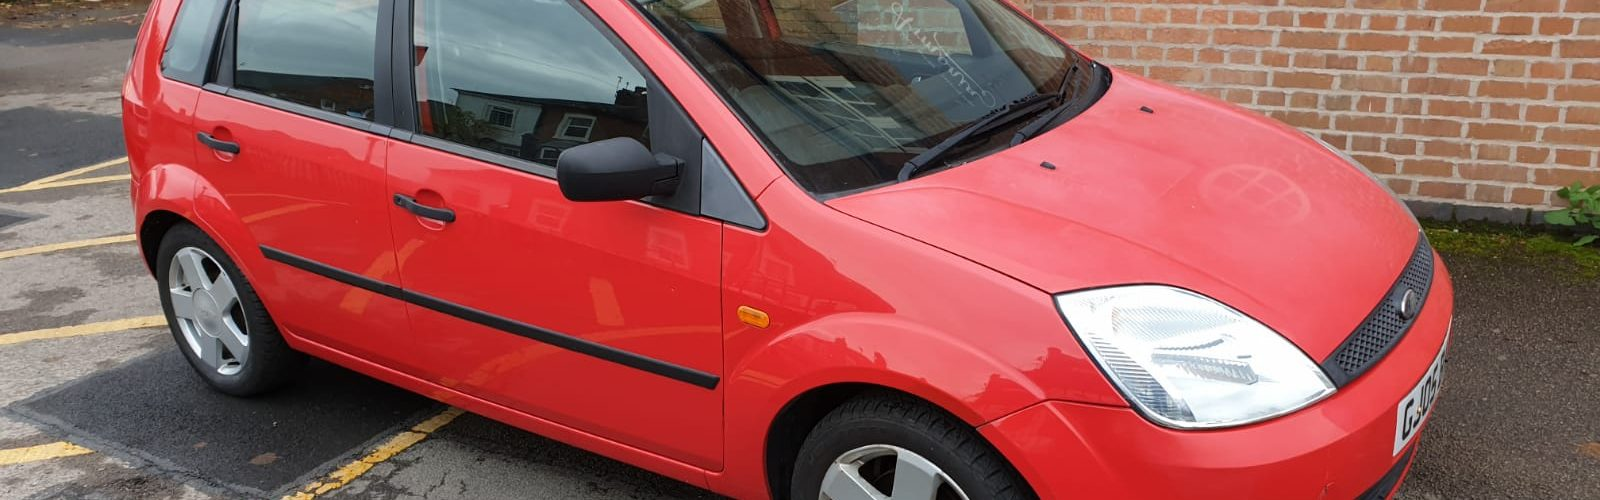 For Sale - Red Ford Fiesta 2005 - side view